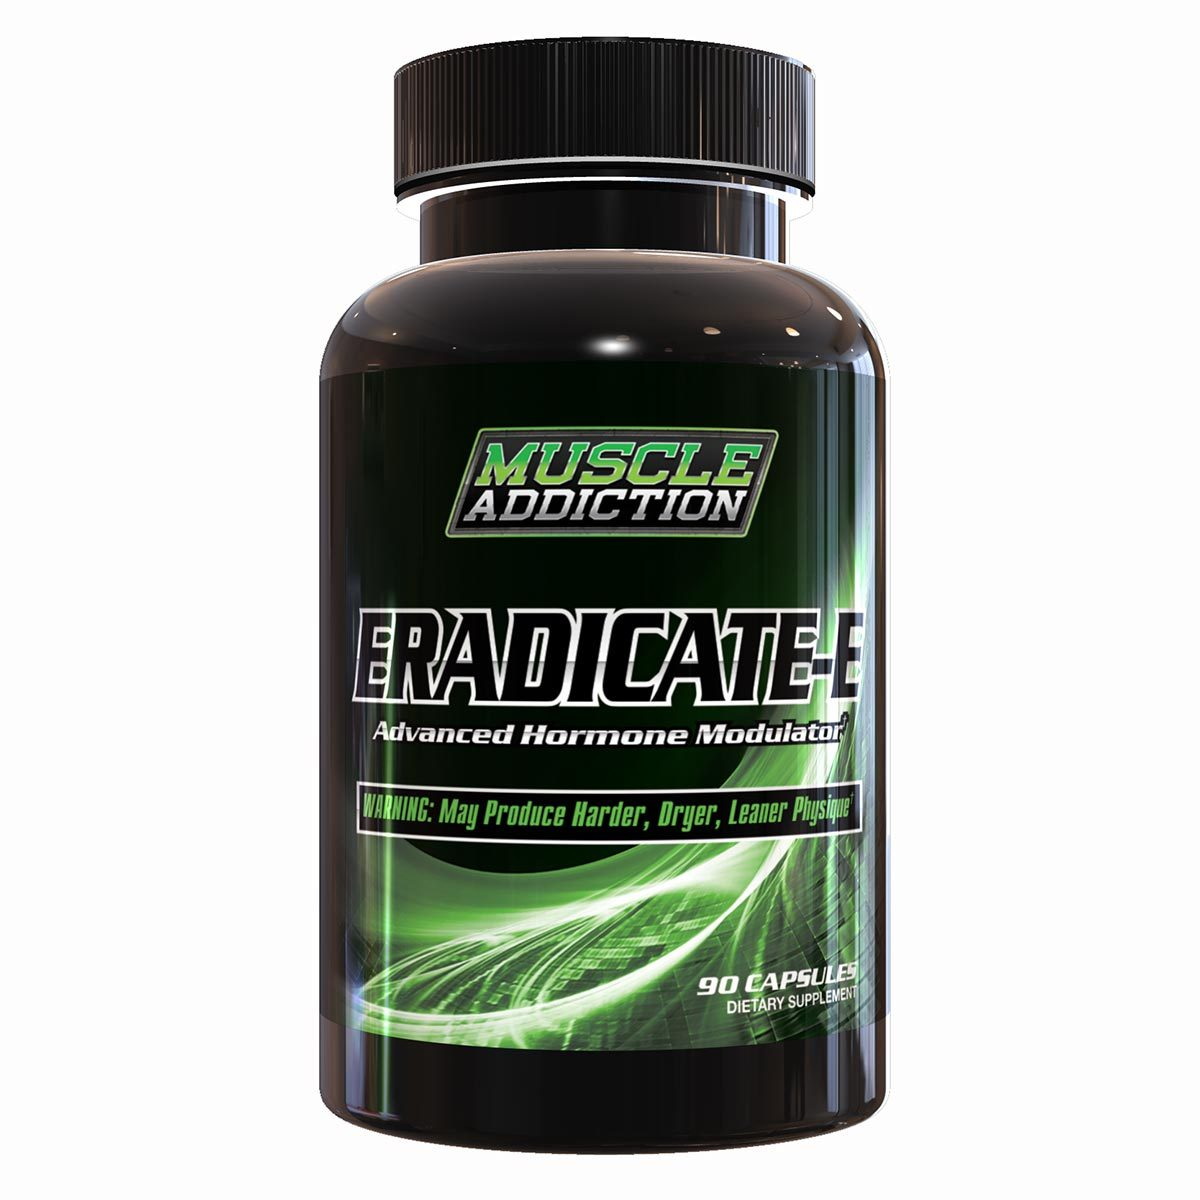 Androsta 3 5 Diene 7 17 Dione Side Effects muscle addiction eradicate-e 90 caps